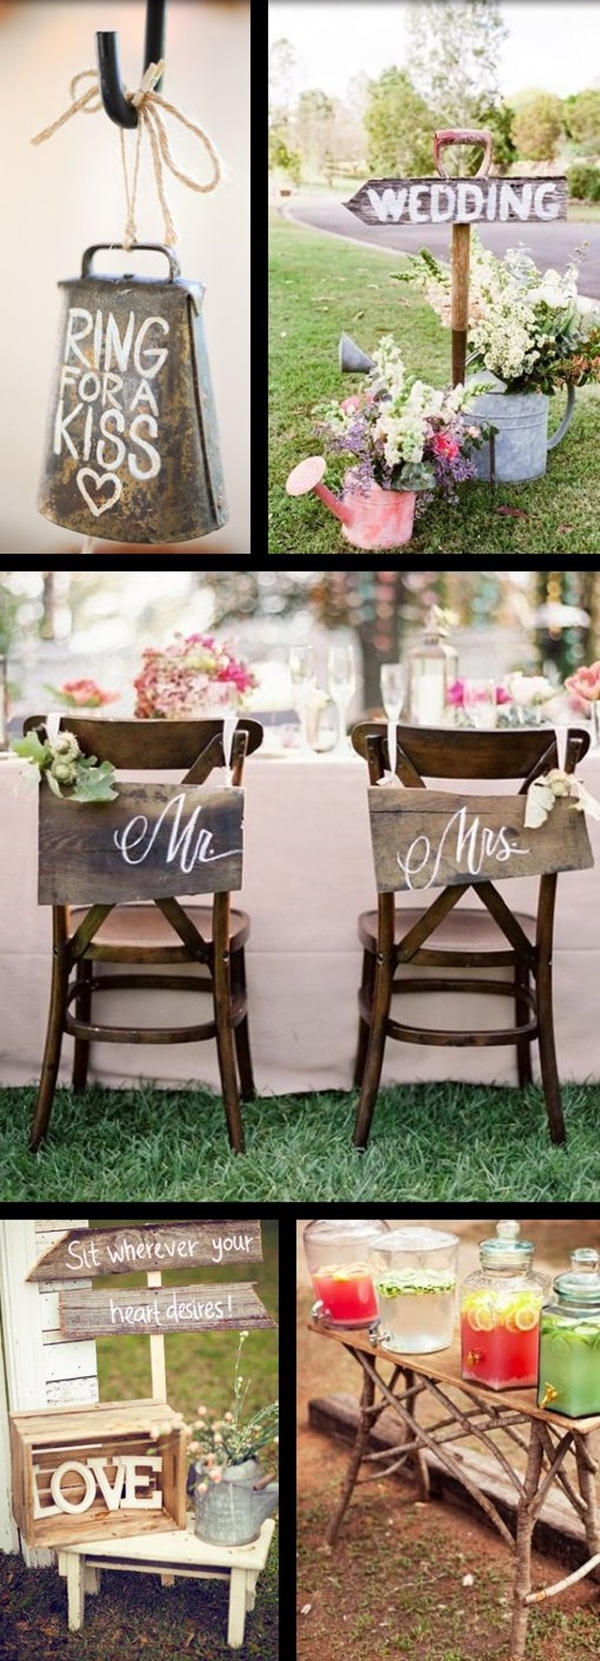 30 diy weddings ideas on a budget to make it unforgettable for Diy wedding ideas on a budget